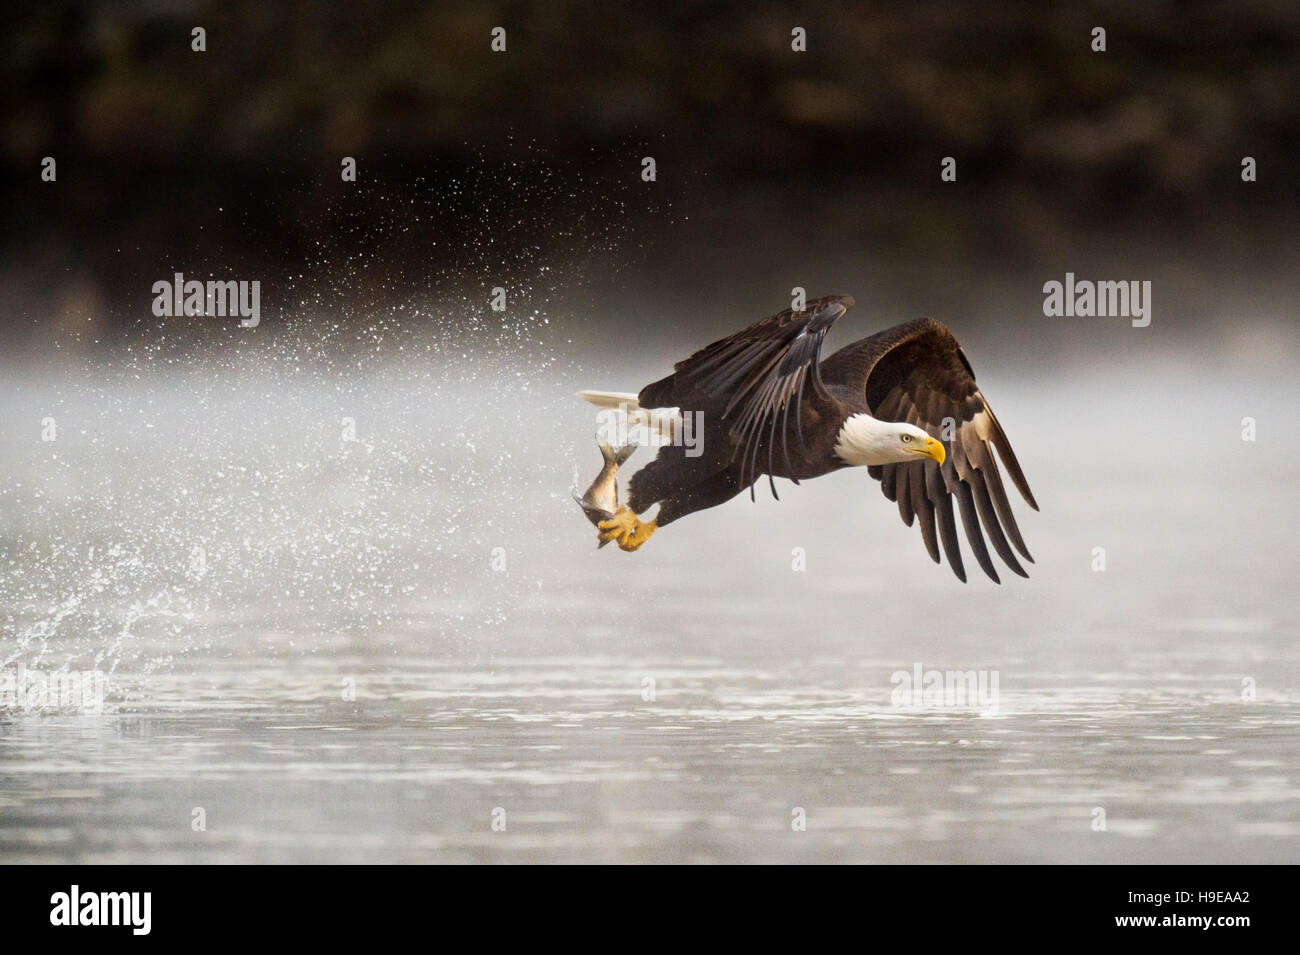 An adult Bald Eagle grabs a fish from the water early one morning with a big splash behind it as it flies away. - Stock Image